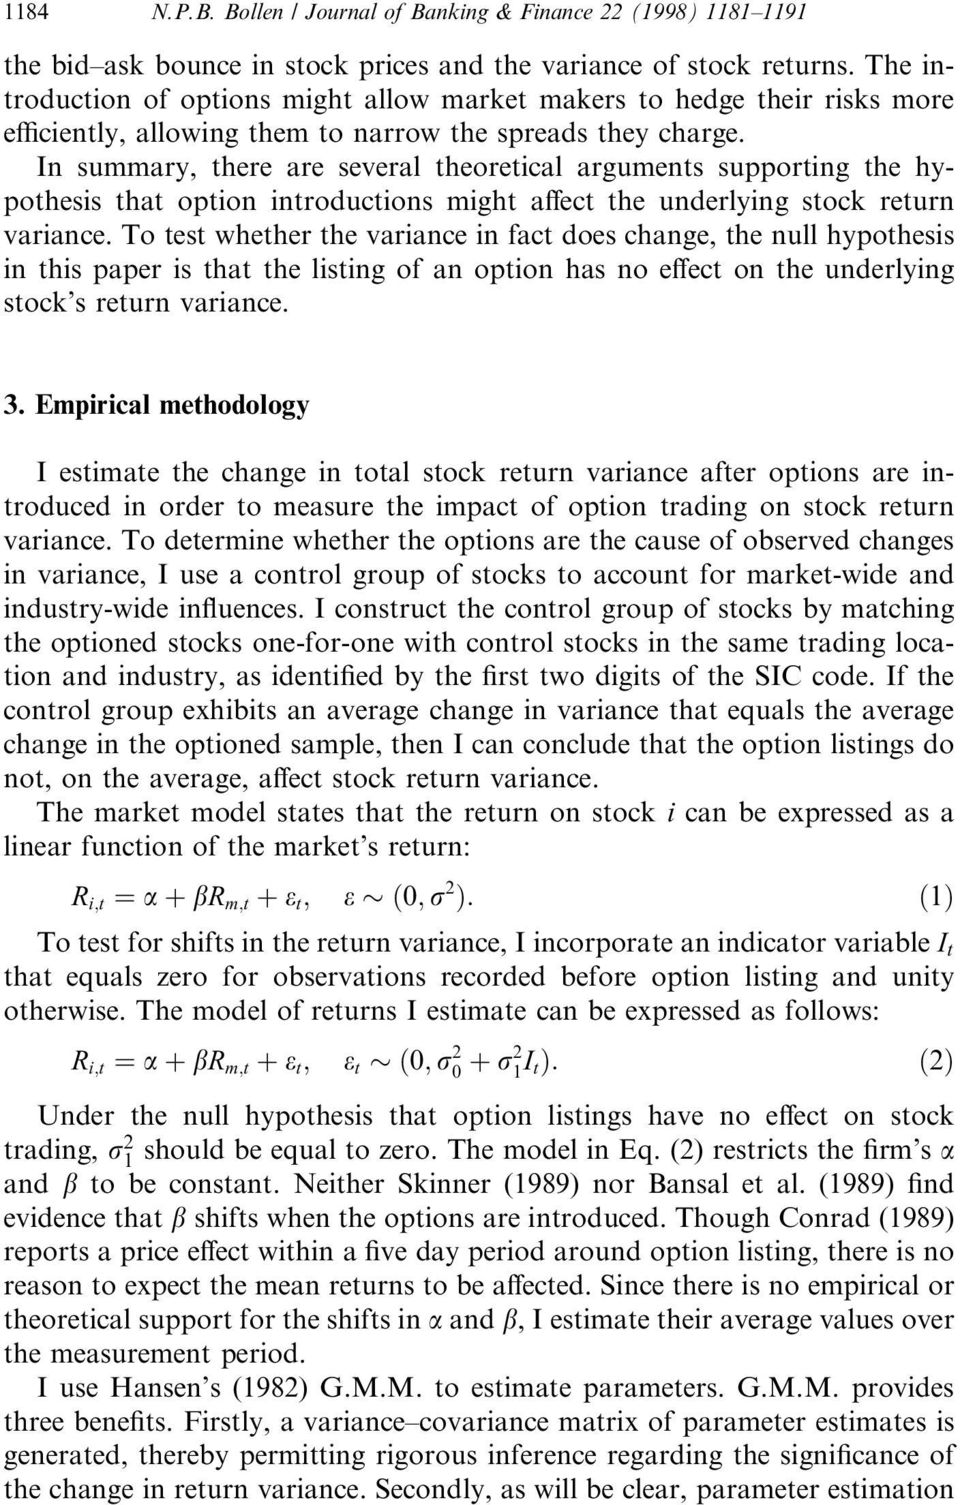 In summary, there are several theoretical arguments supporting the hypothesis that option introductions might a ect the underlying stock return variance.